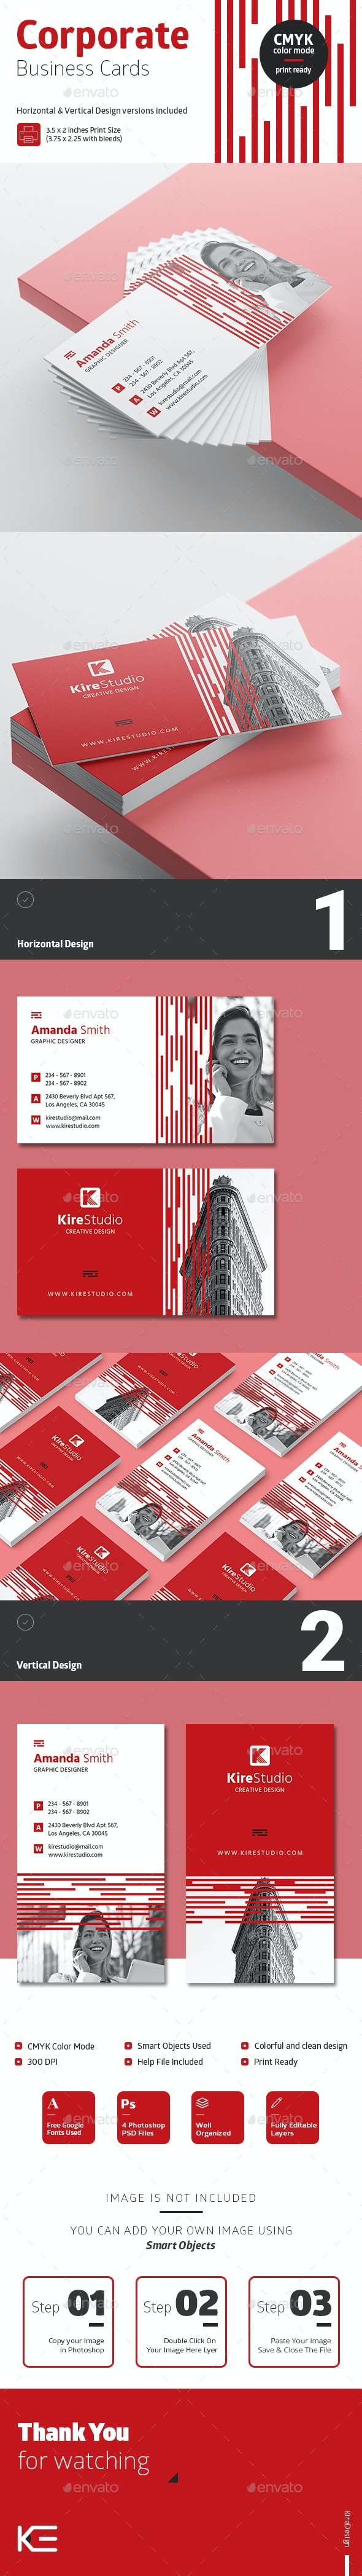 Horizontal & Vertical Corporate Business Cards #7 - Corporate Business Cards